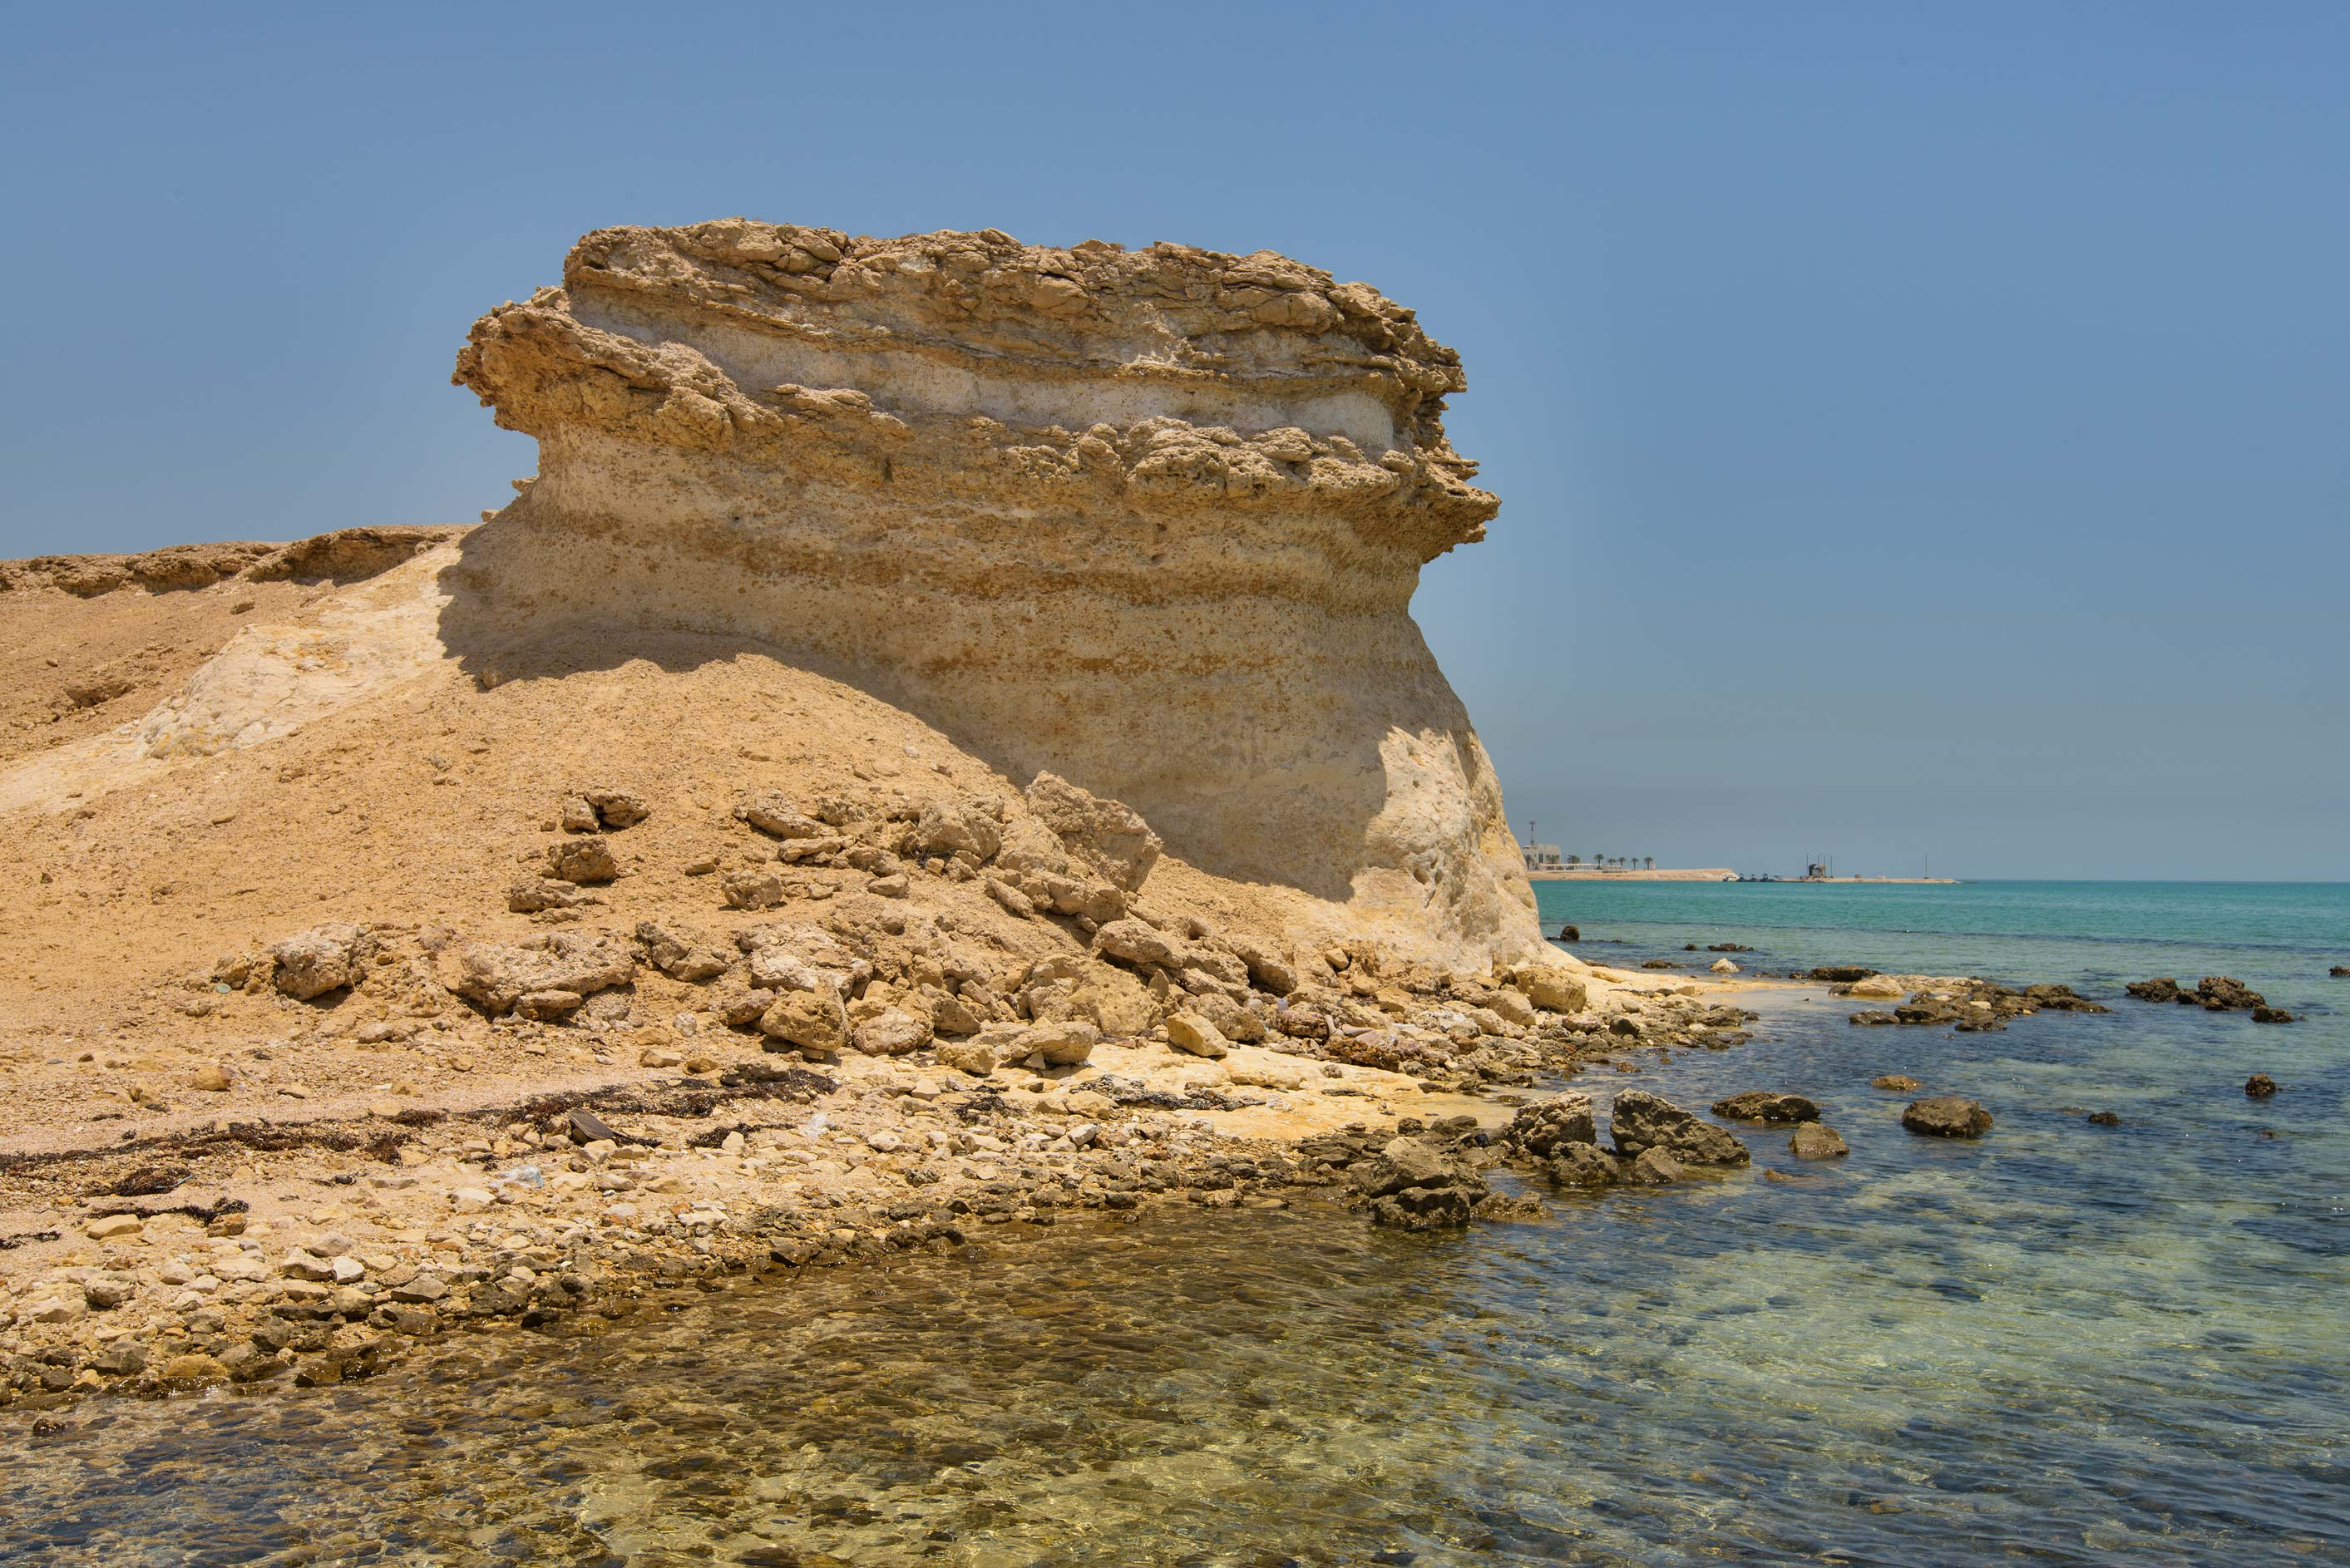 Sandstone cliffs in northern part of Ras Abrouq Peninsula, north from Zekreet. Qatar